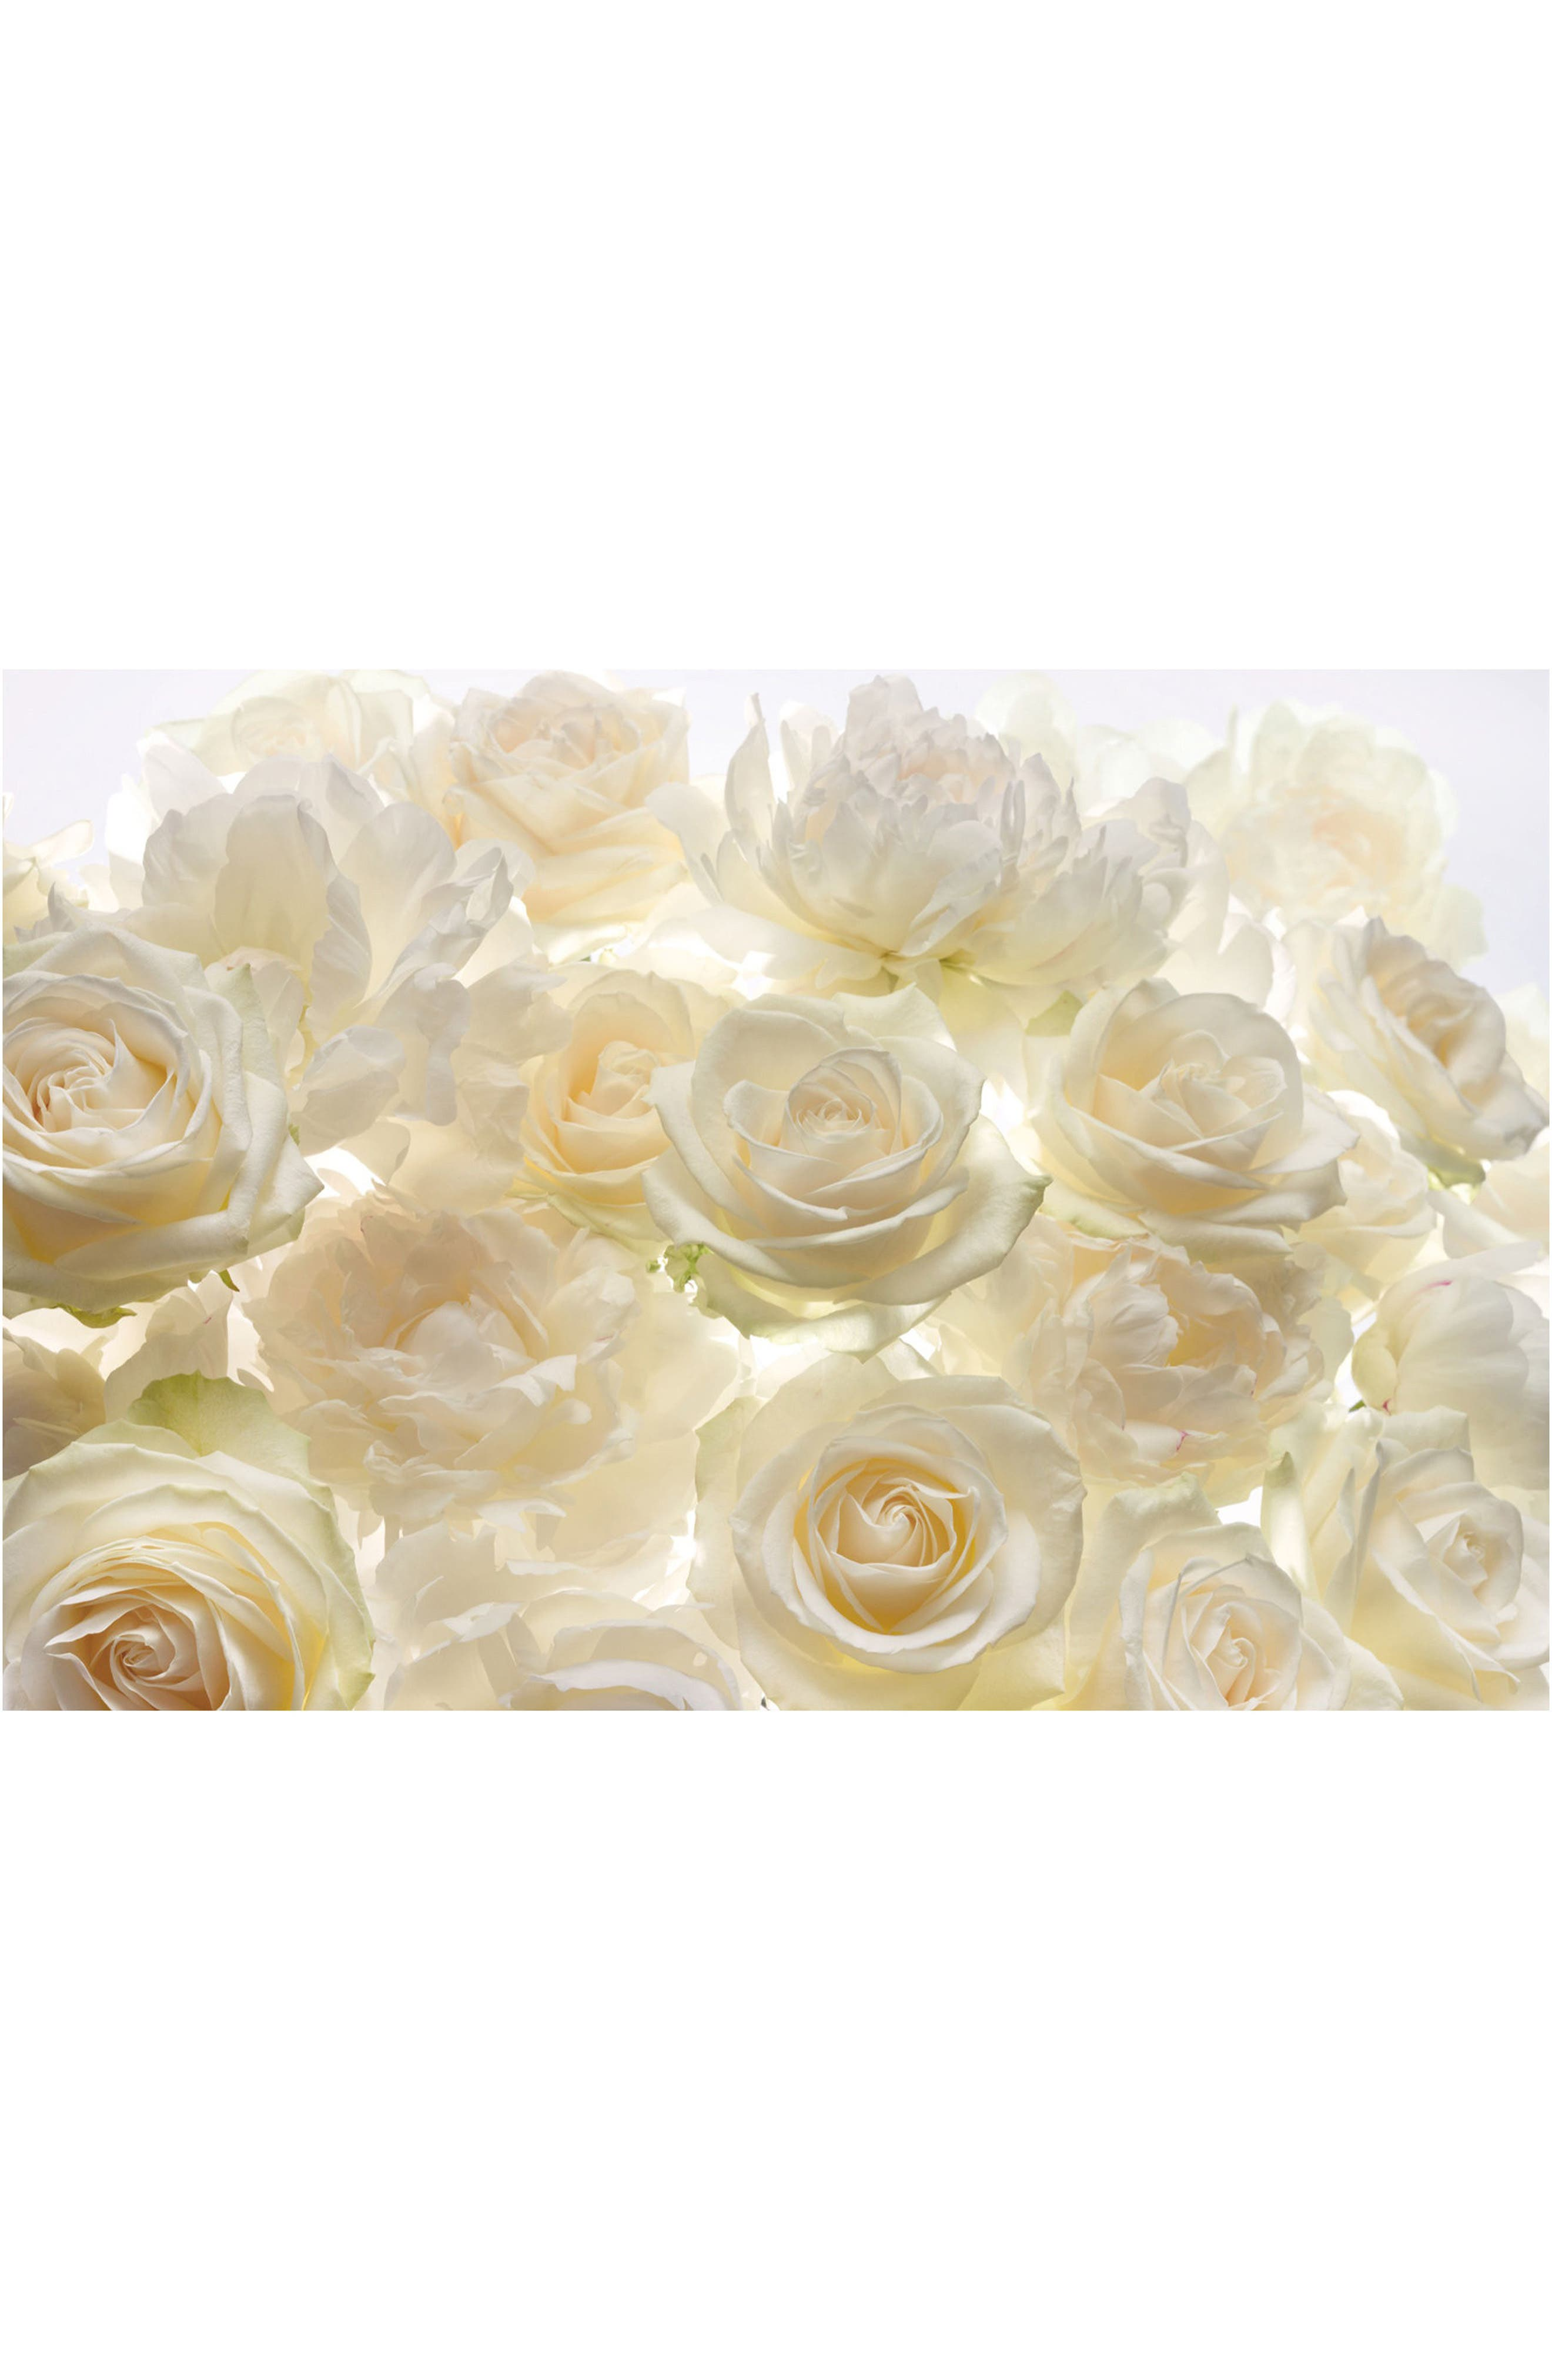 Ivory Rose Wall Mural,                         Main,                         color, White Off-White